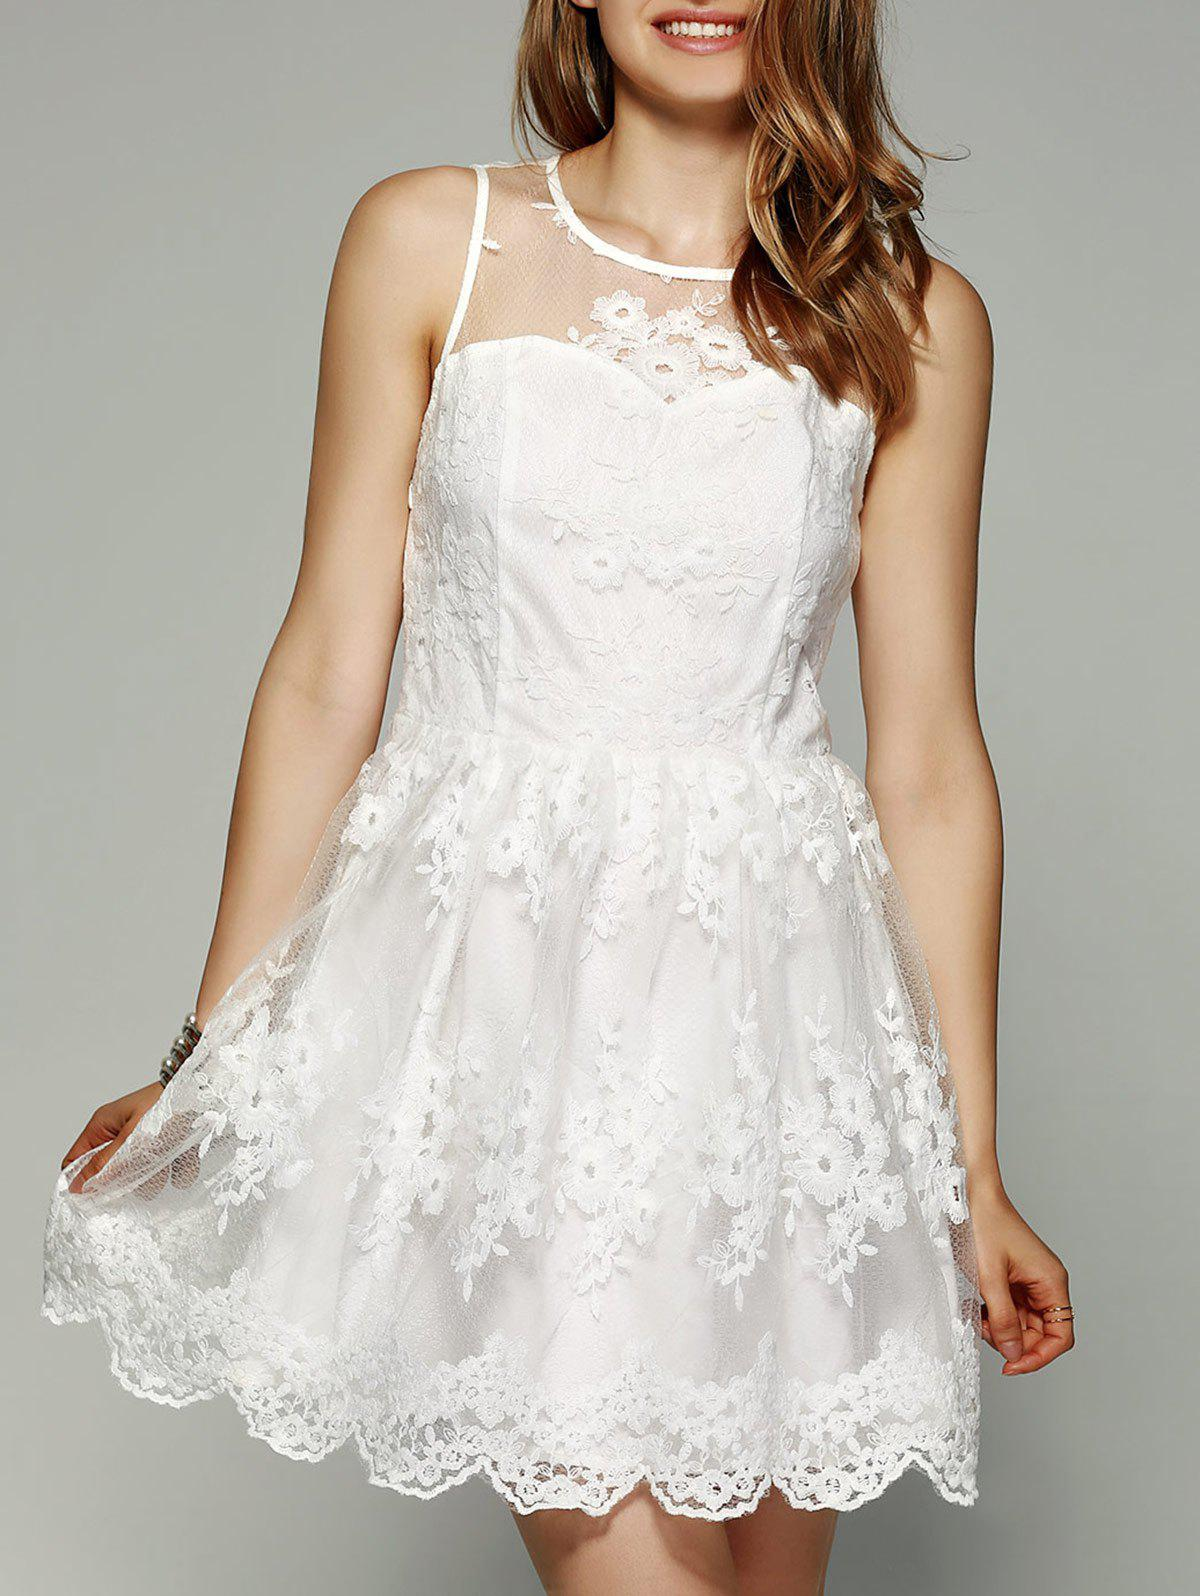 See-Through Scalloped Edge White Lace Dress - WHITE XL